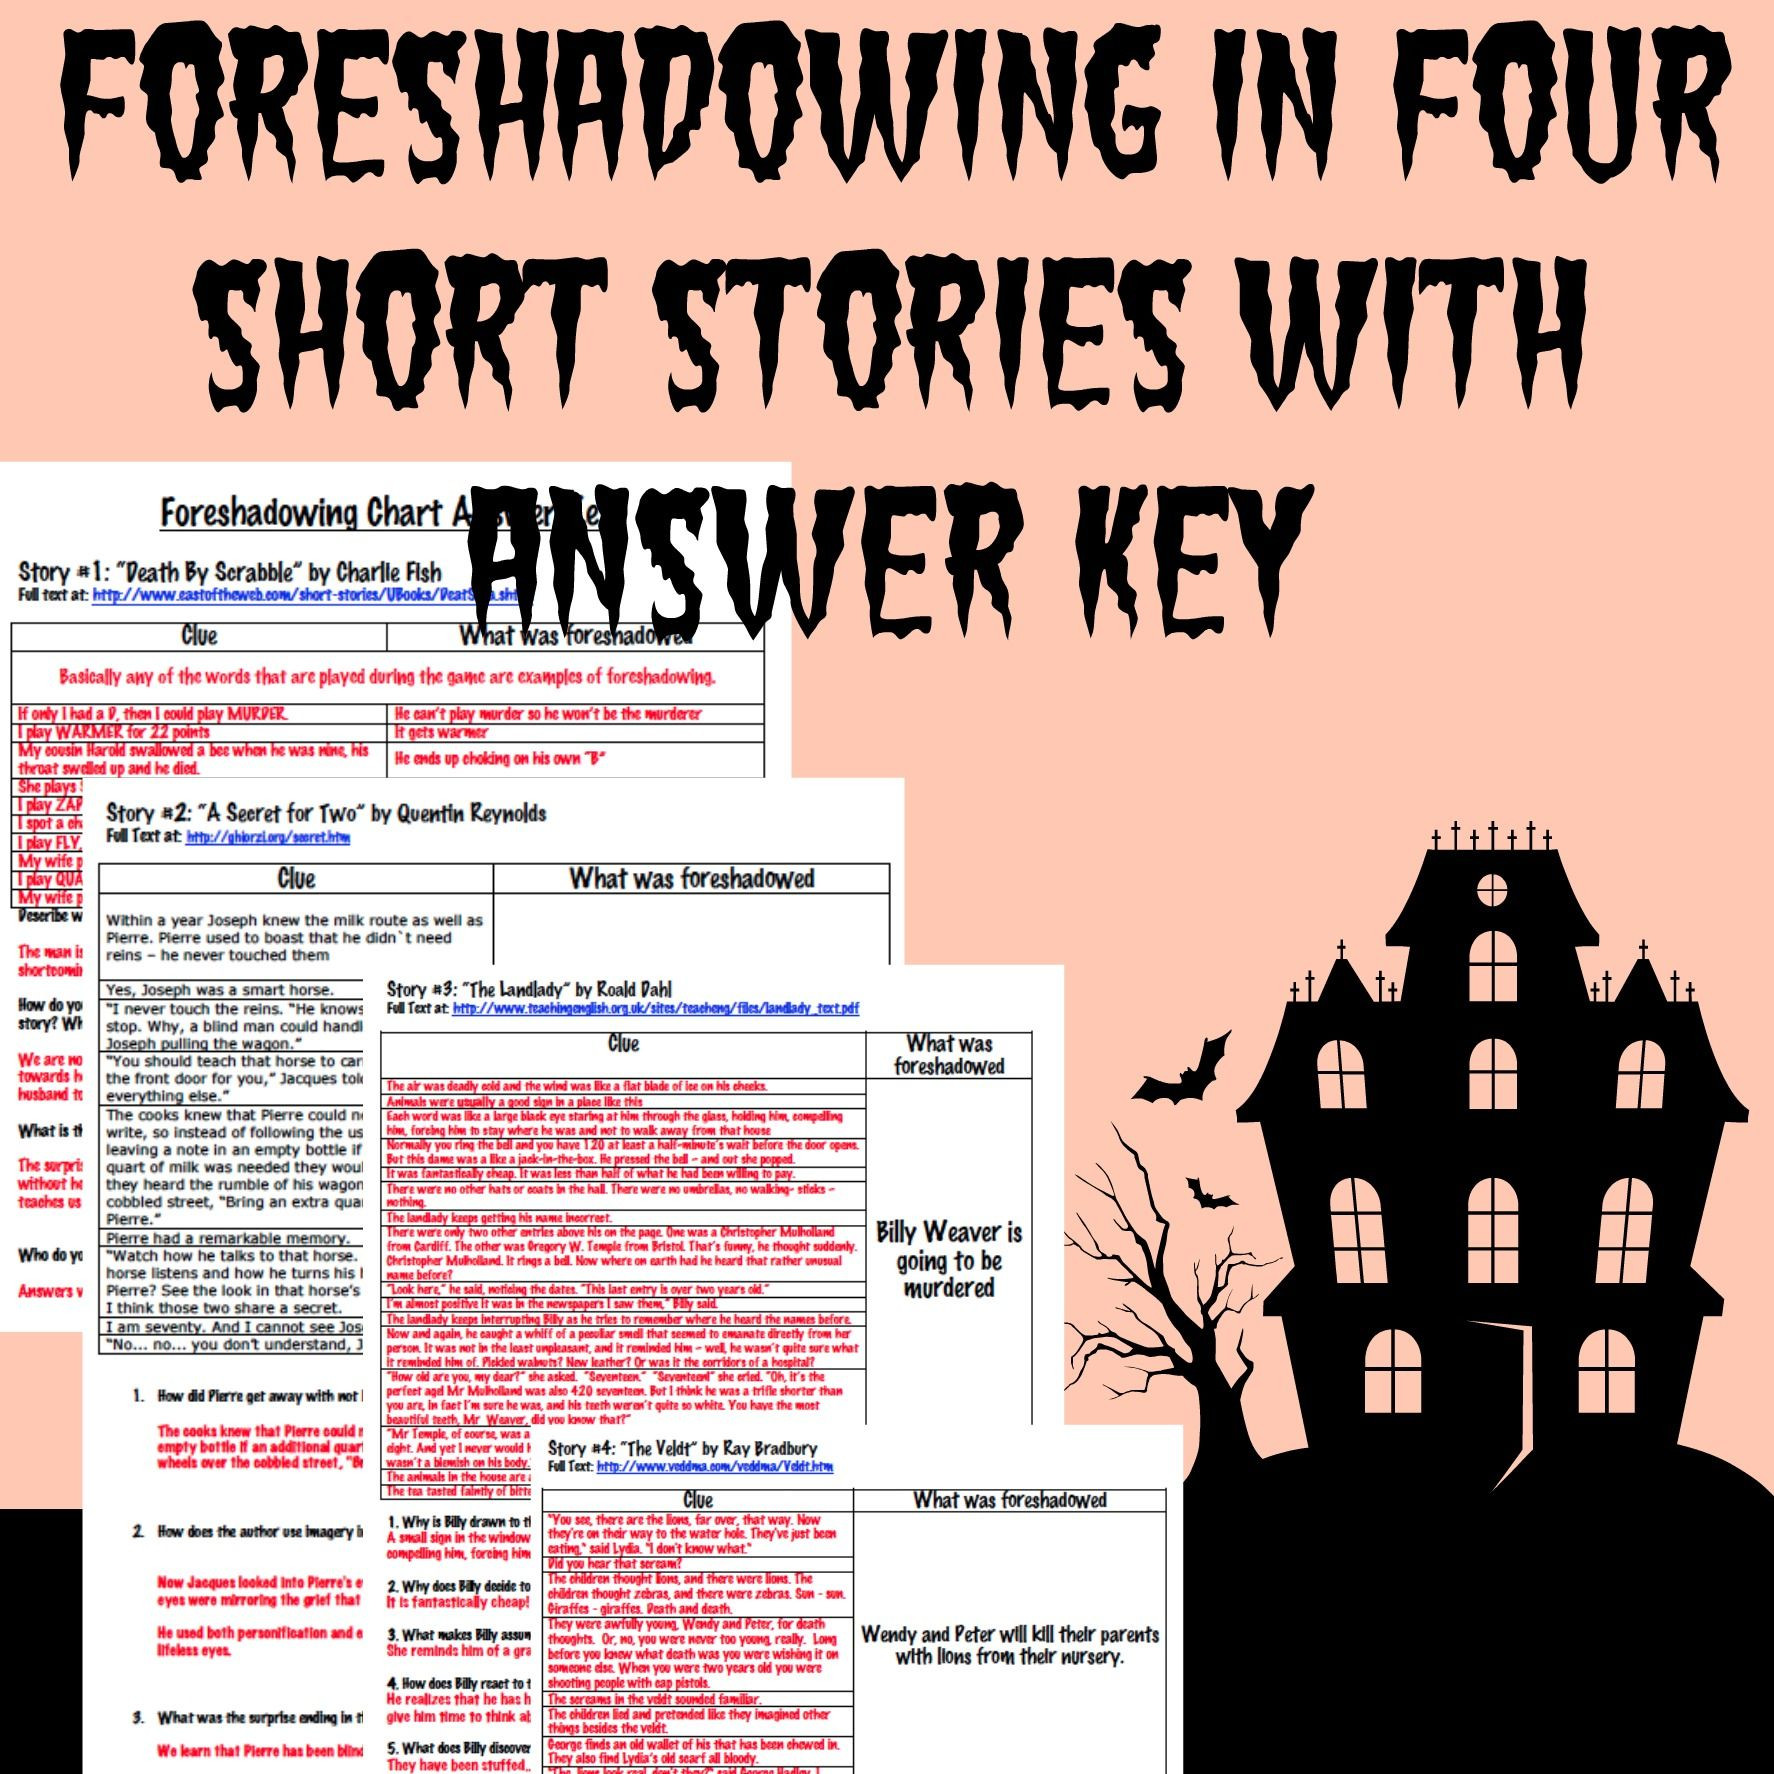 Foreshadowing Worksheet Middle School foreshadowing Charts for Four Short Stories